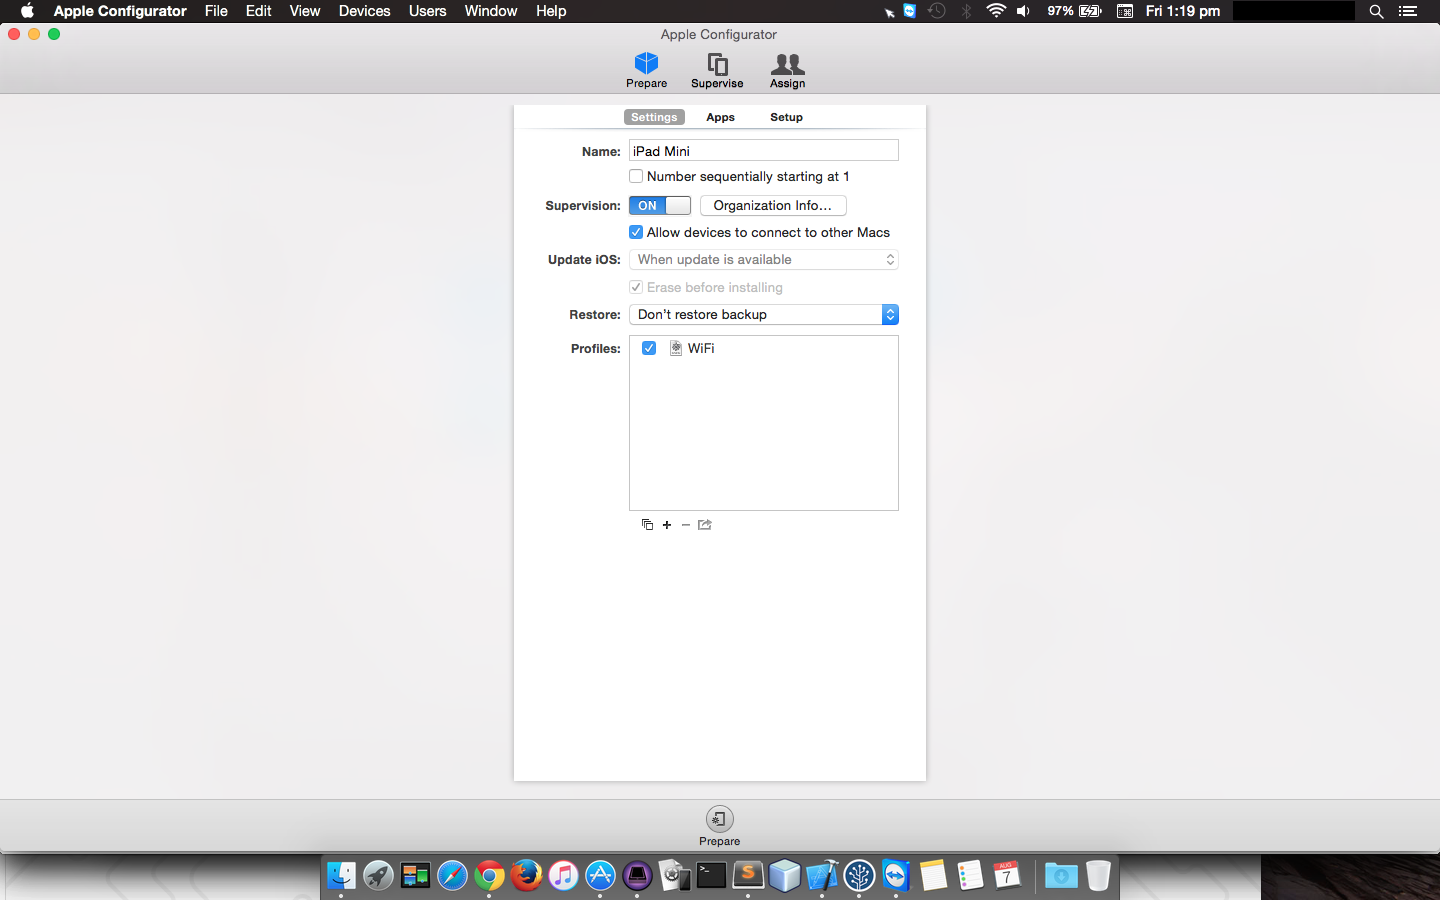 More control with Apple Configurator